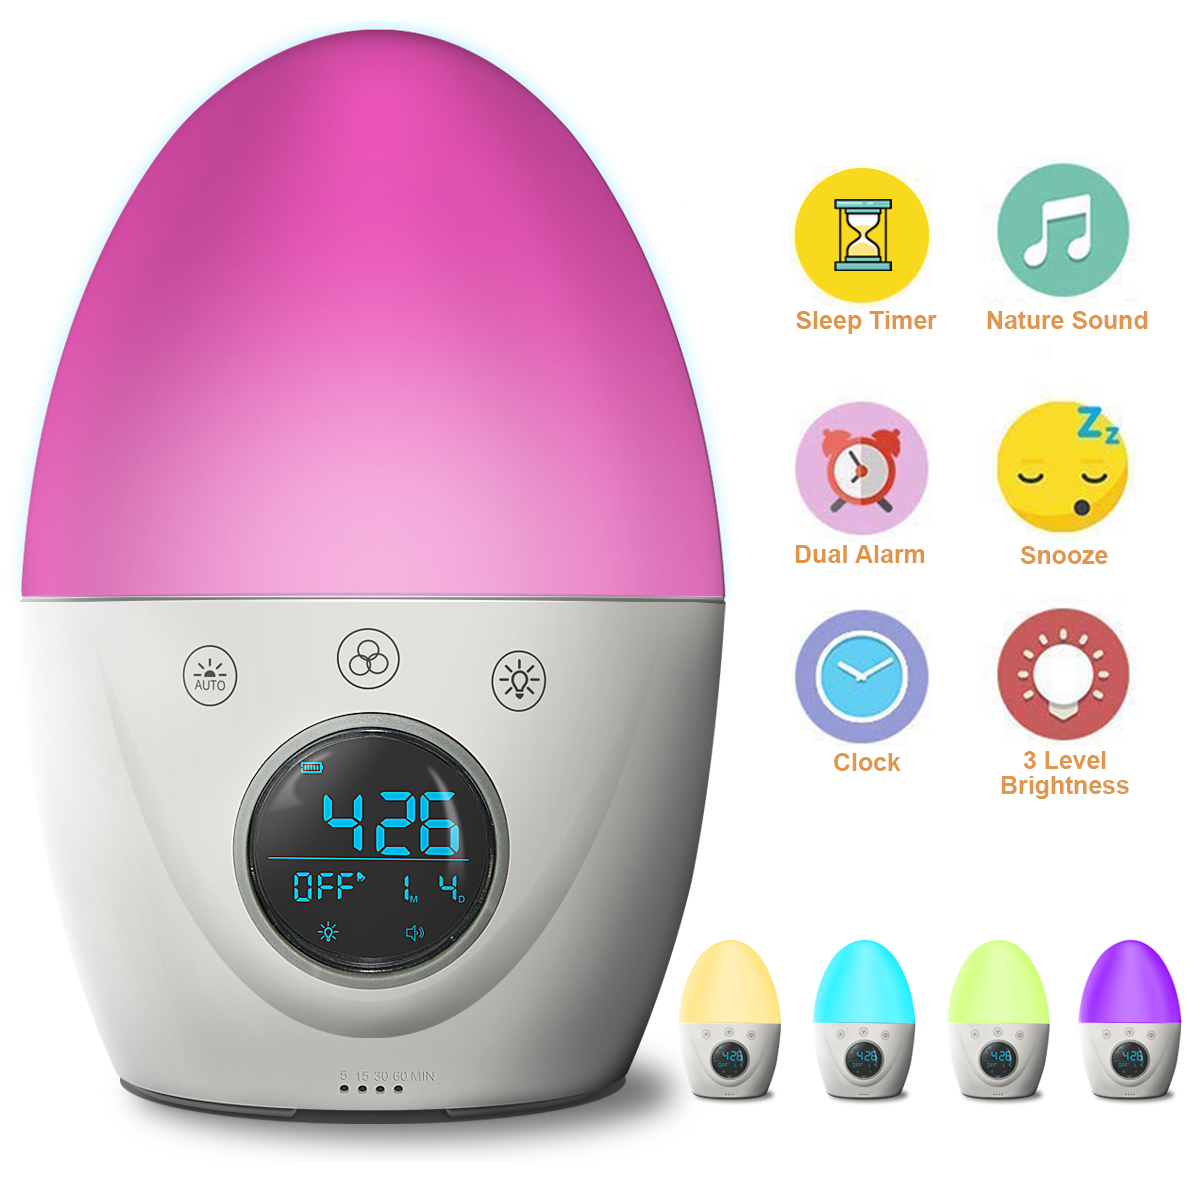 Updated ver-FiveHome Kids Alarm Clock Wake Up Light ,Colour Changing & Dimmable Night Light,Touch Control, Optional Weekday Alarm, Snooze,Sleep Timer,Rechargeable Include USB Cord and Plug Adapter